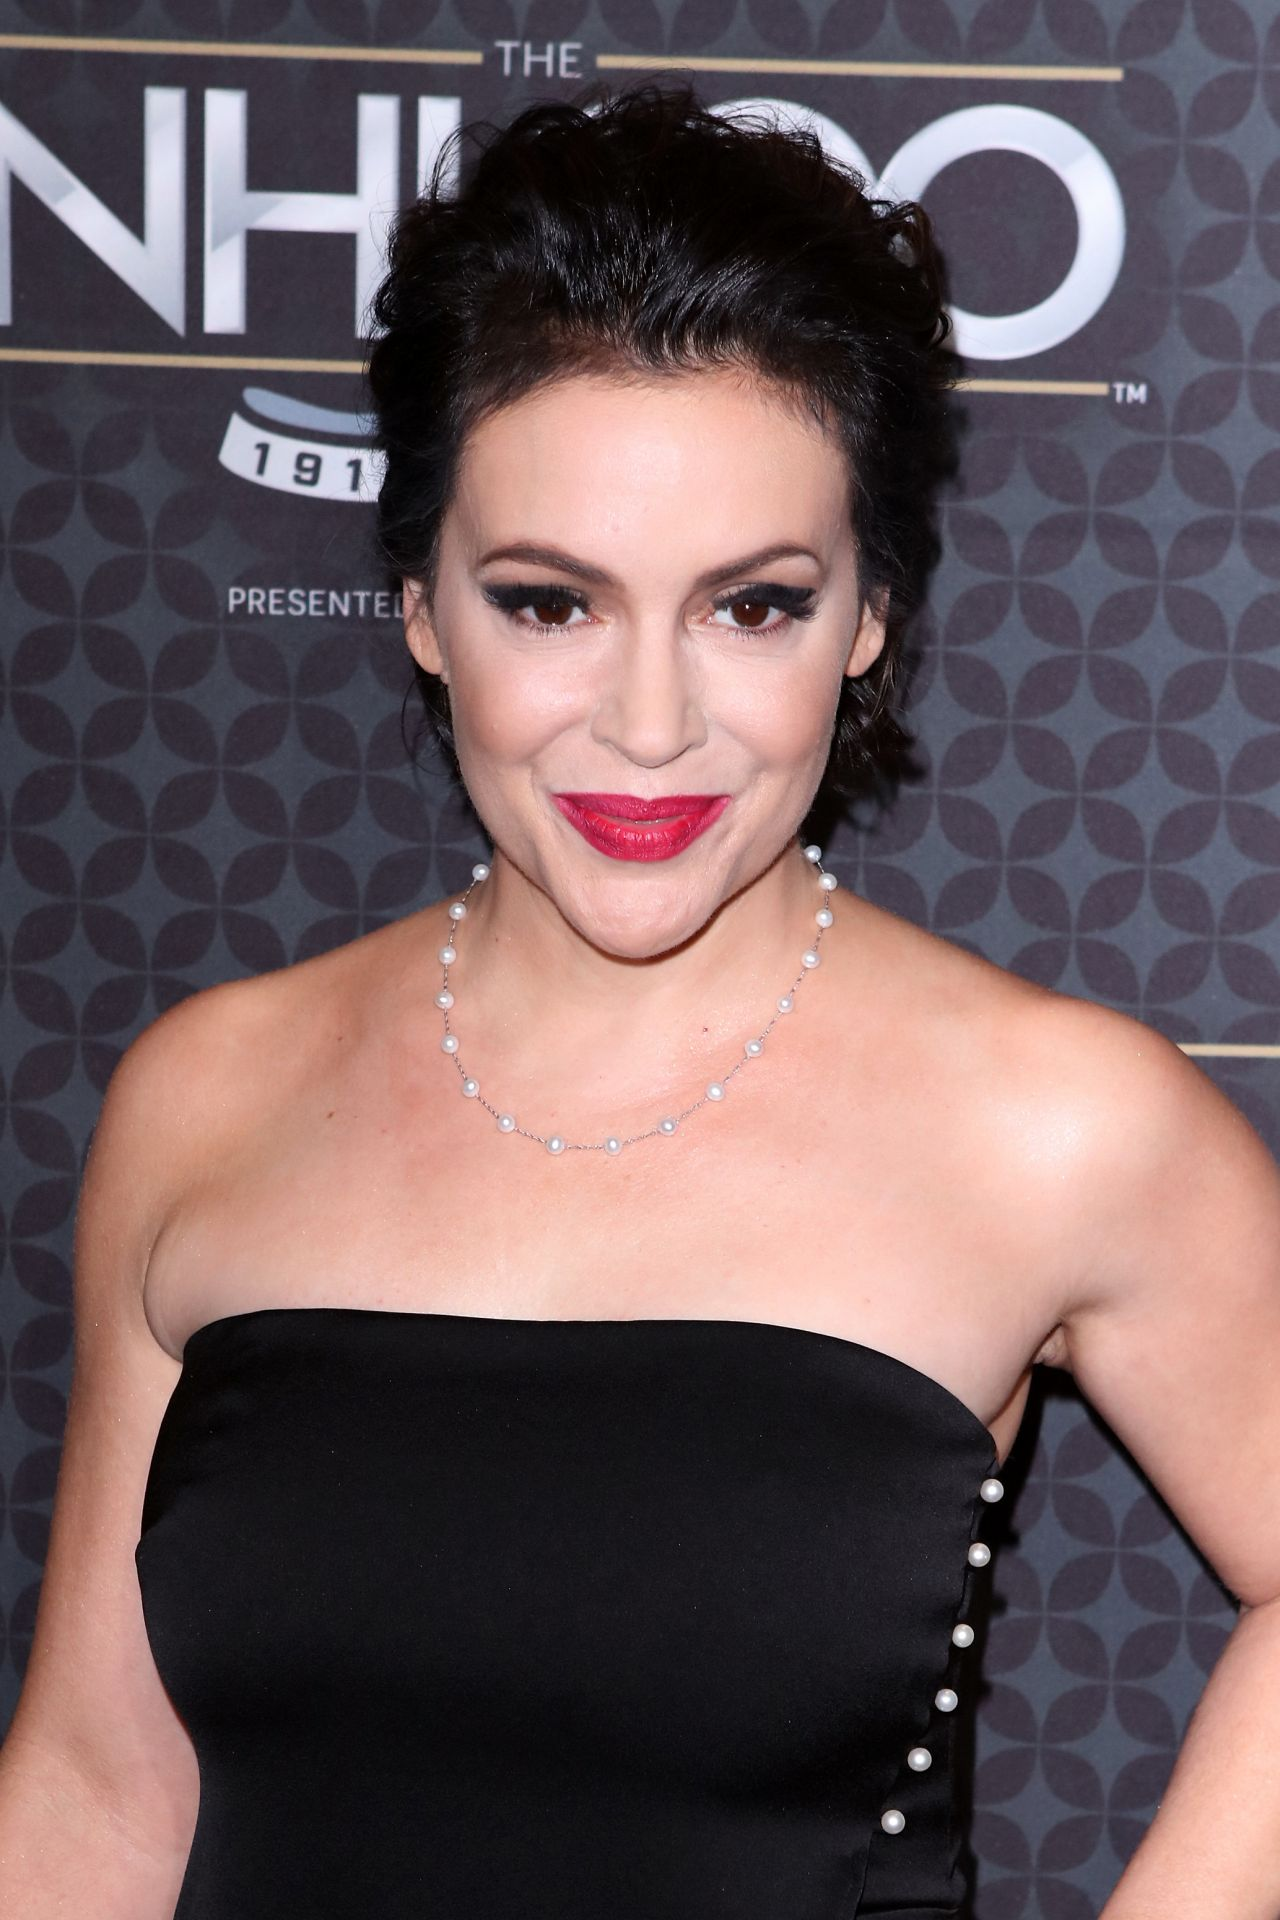 Alyssa Milano At The Nhl 100 2017 Nhl All Star Weekend